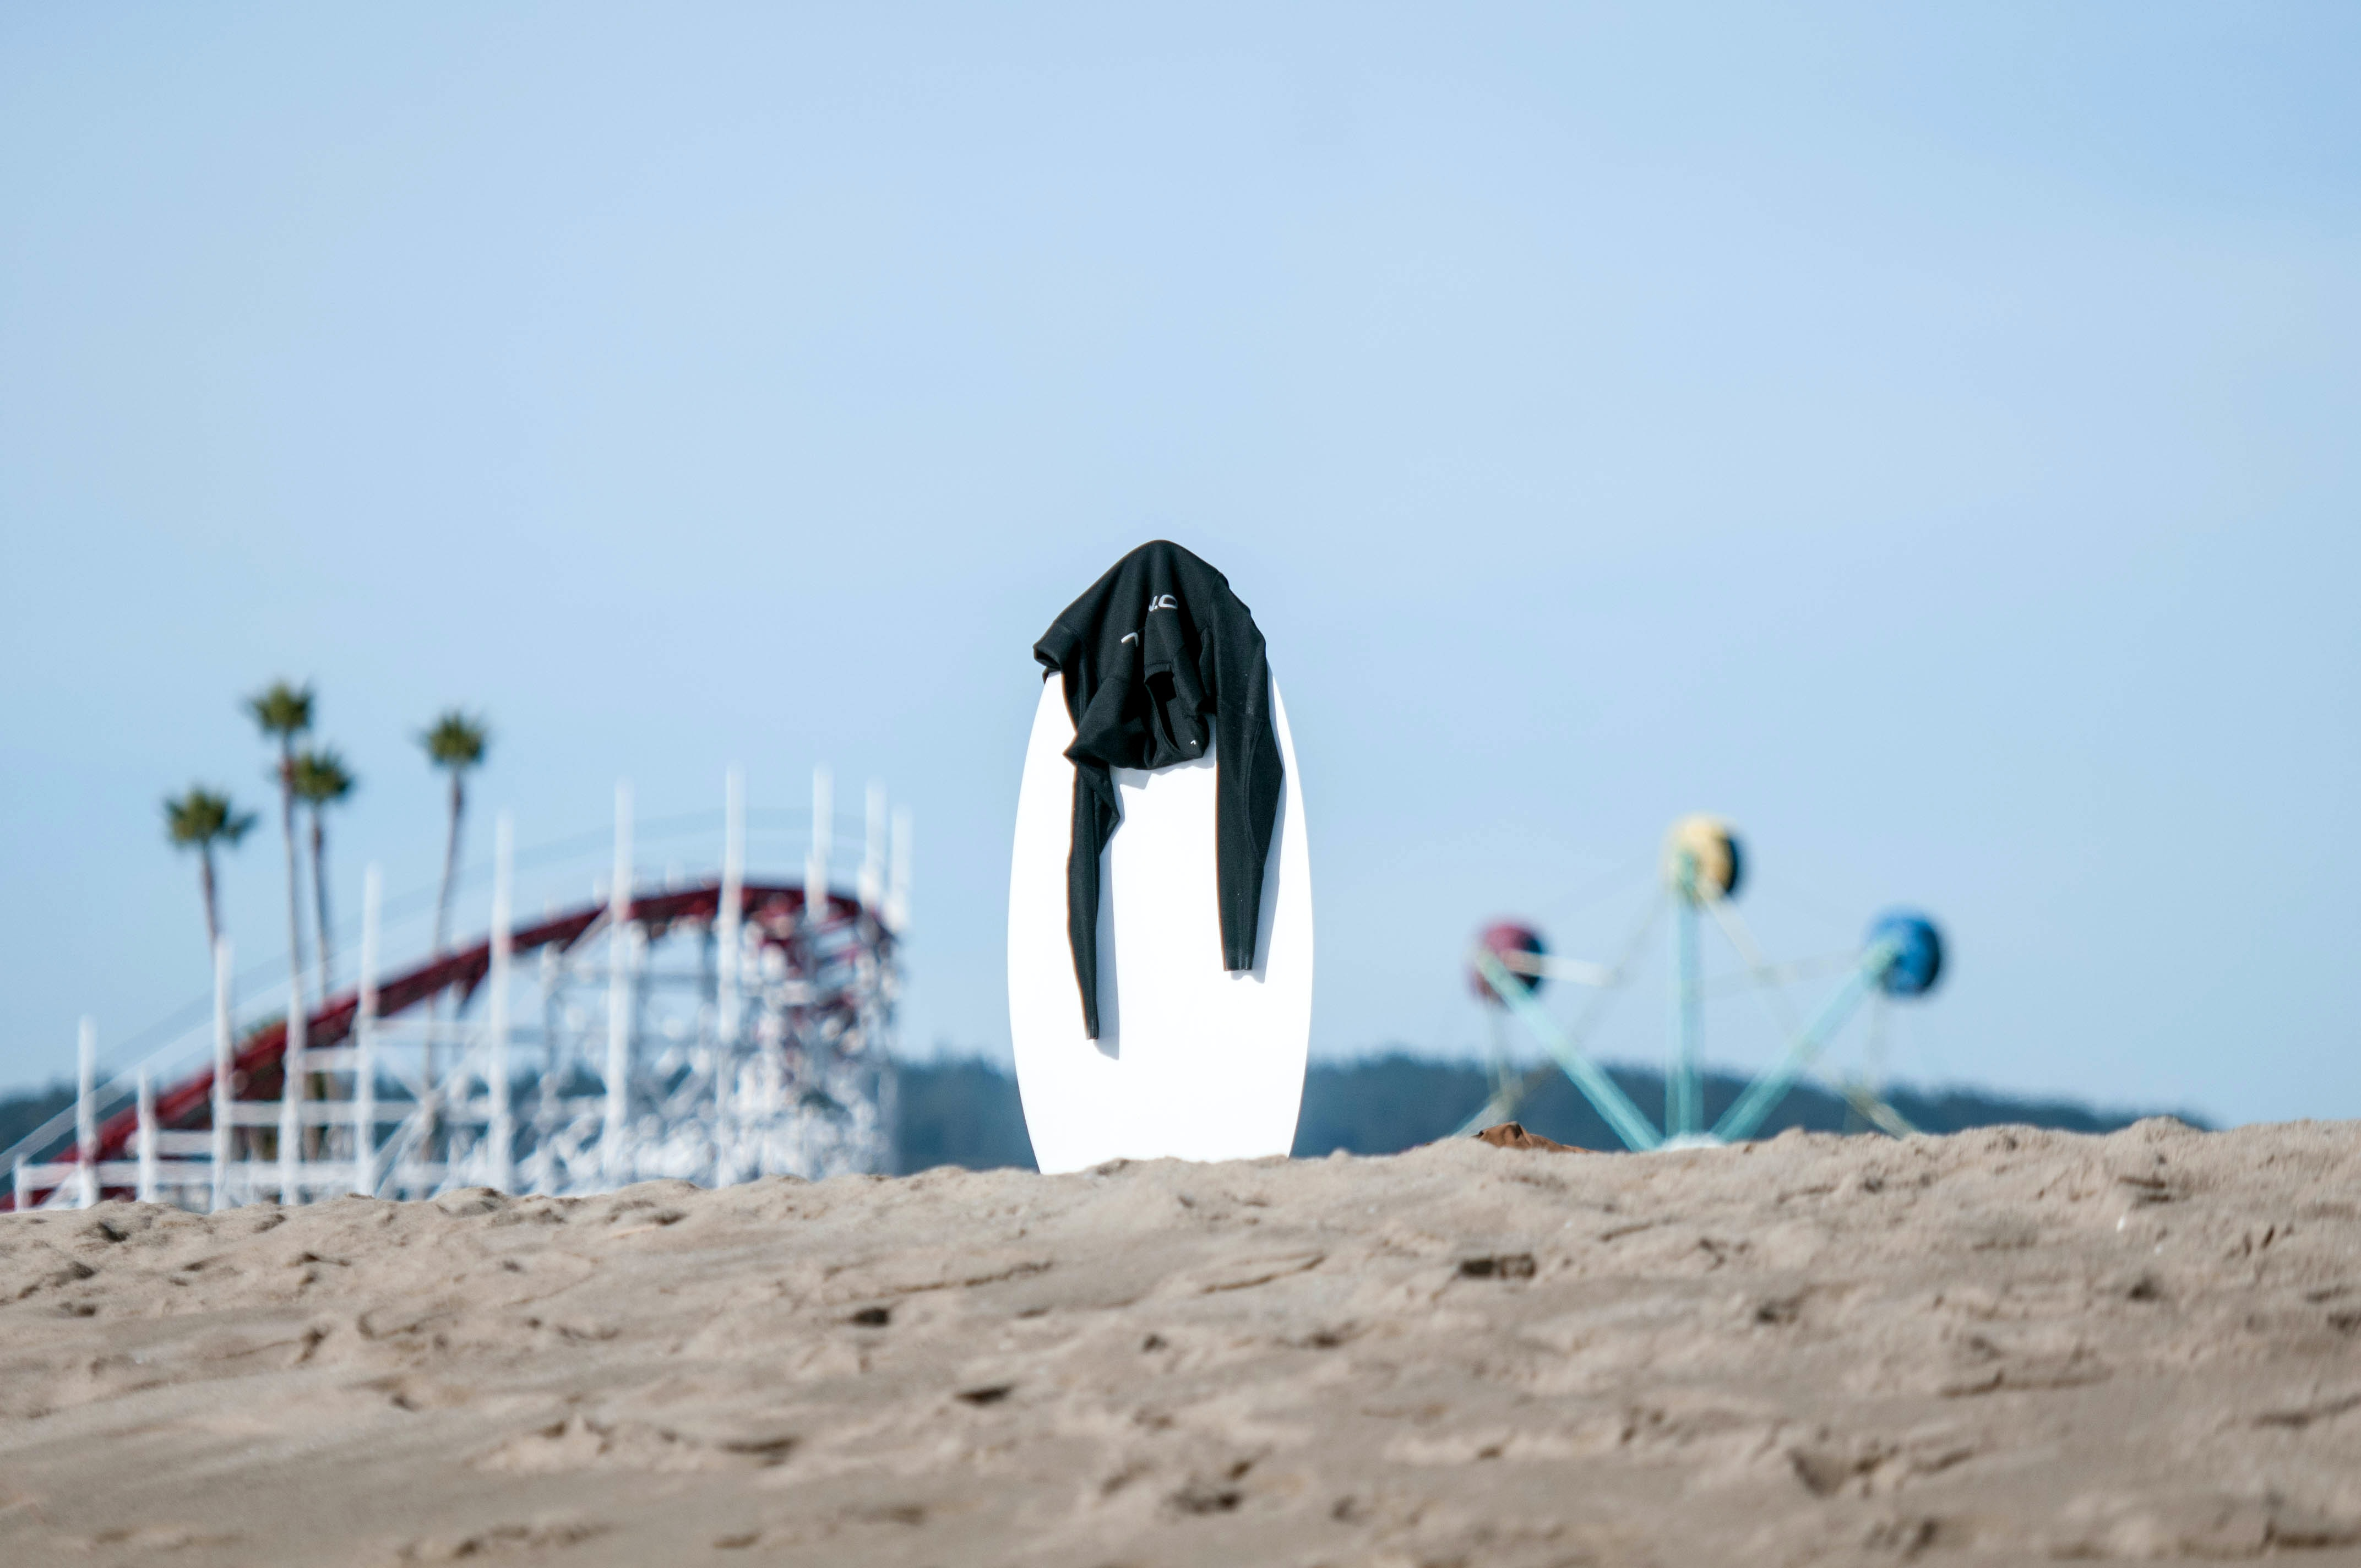 white surfboard with black rashguard on top in the middle of sand